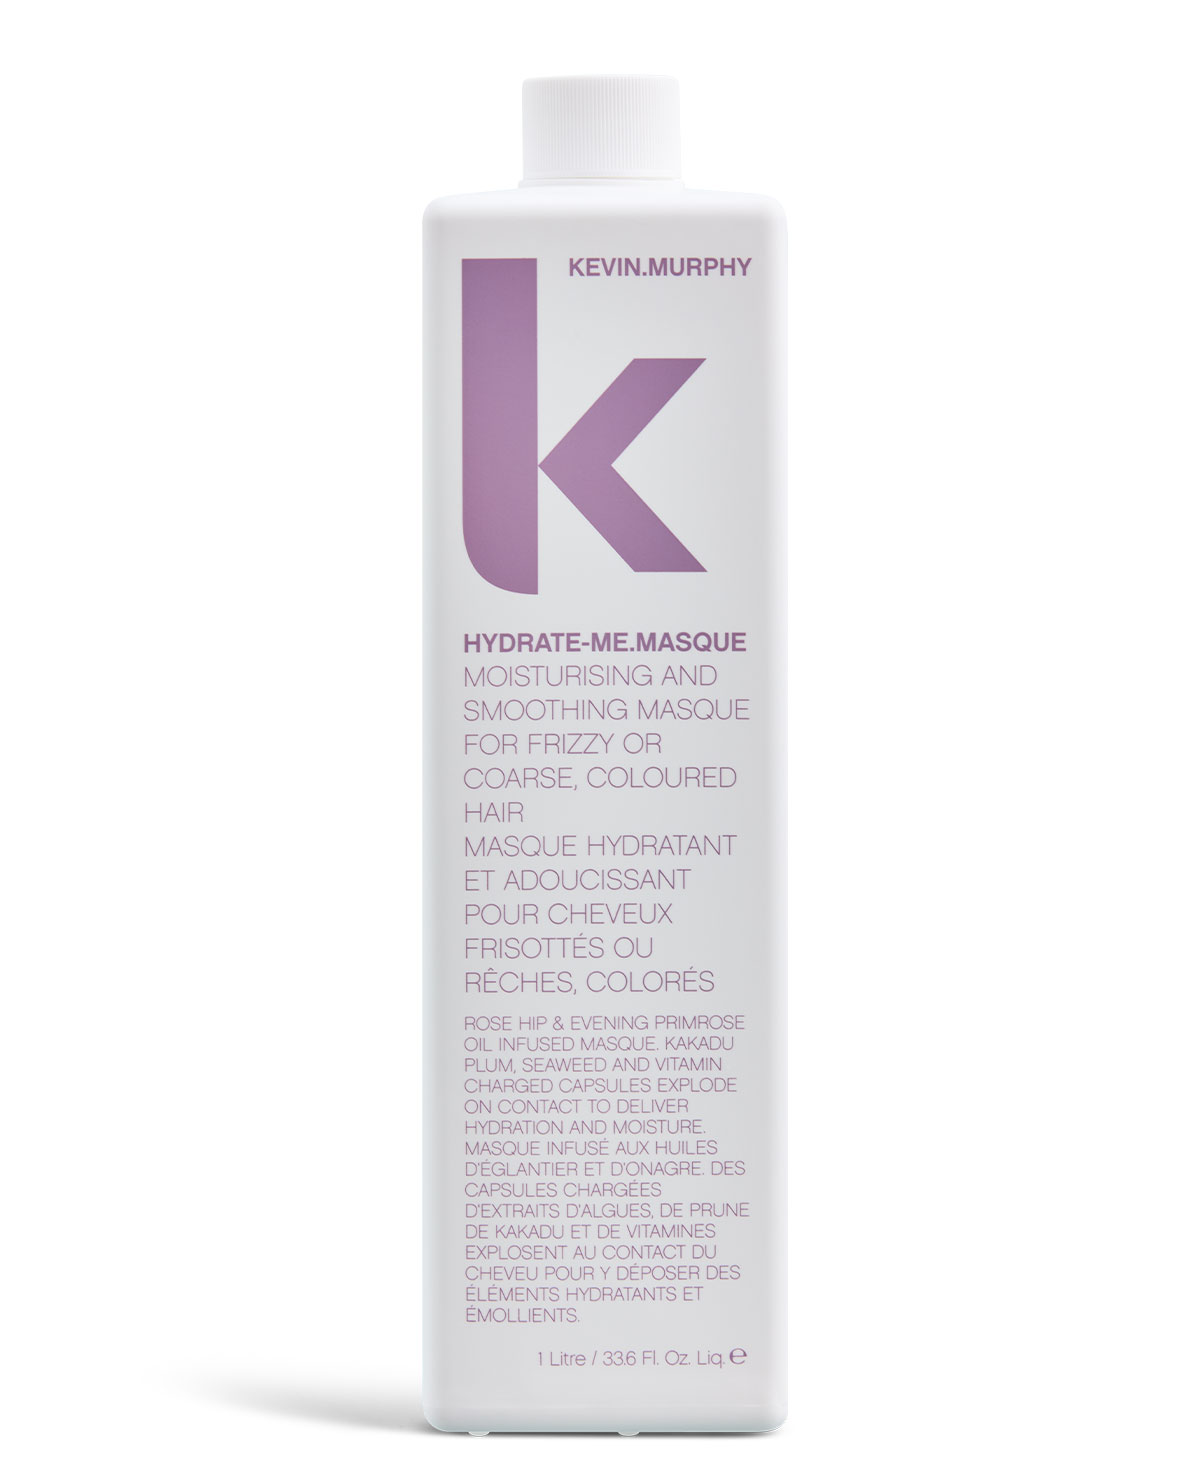 Kevin.Murphy HYDRATE-ME.MASQUE 1000ml